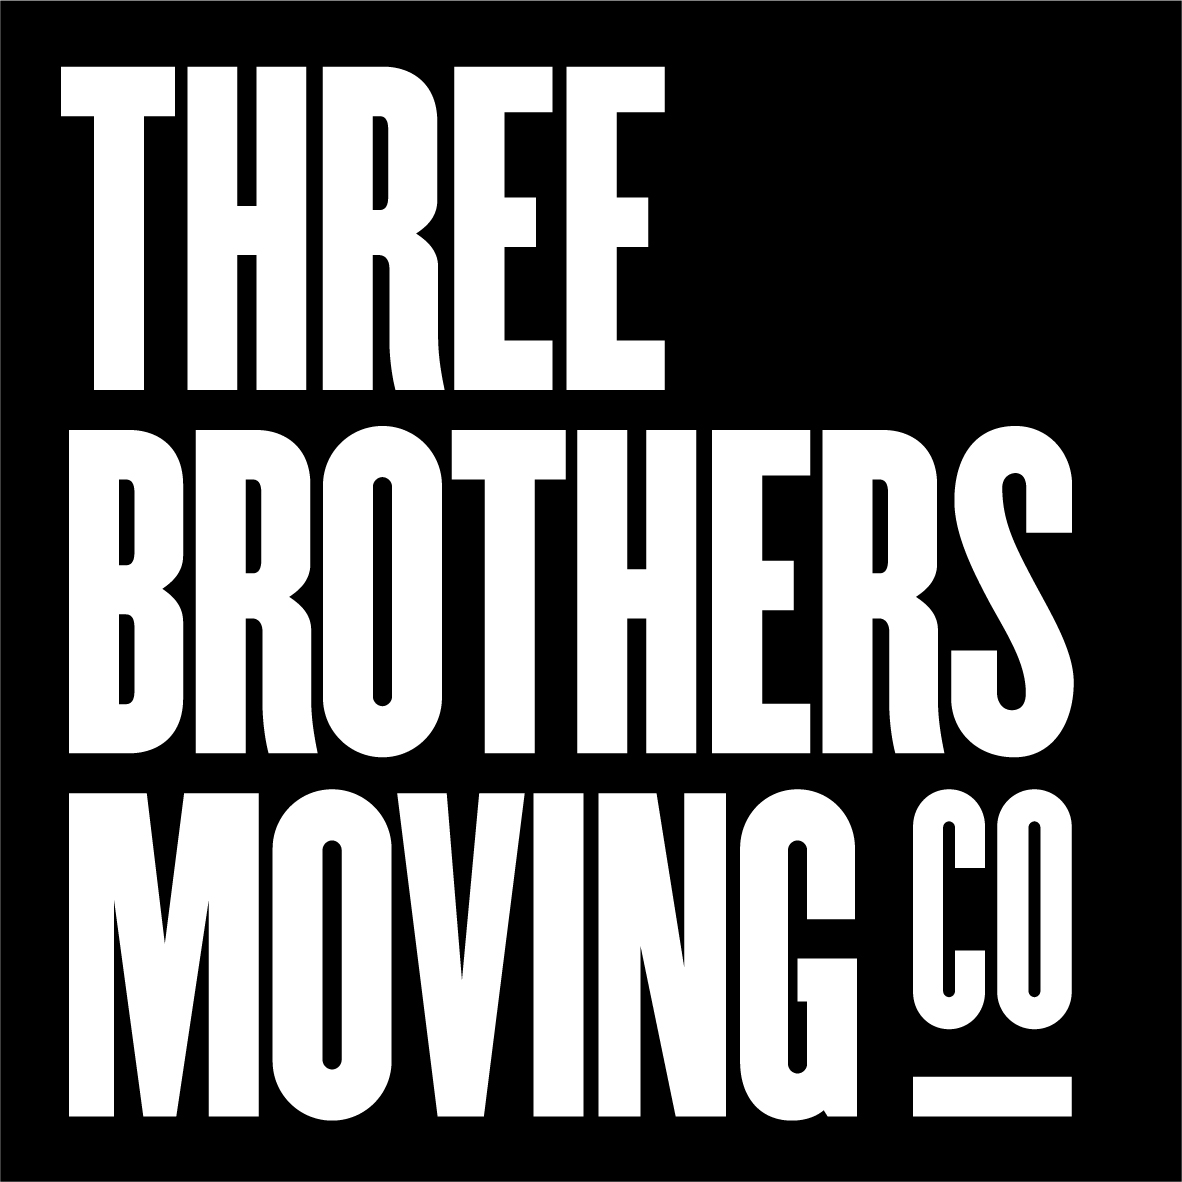 3 Brothers Moving Co.